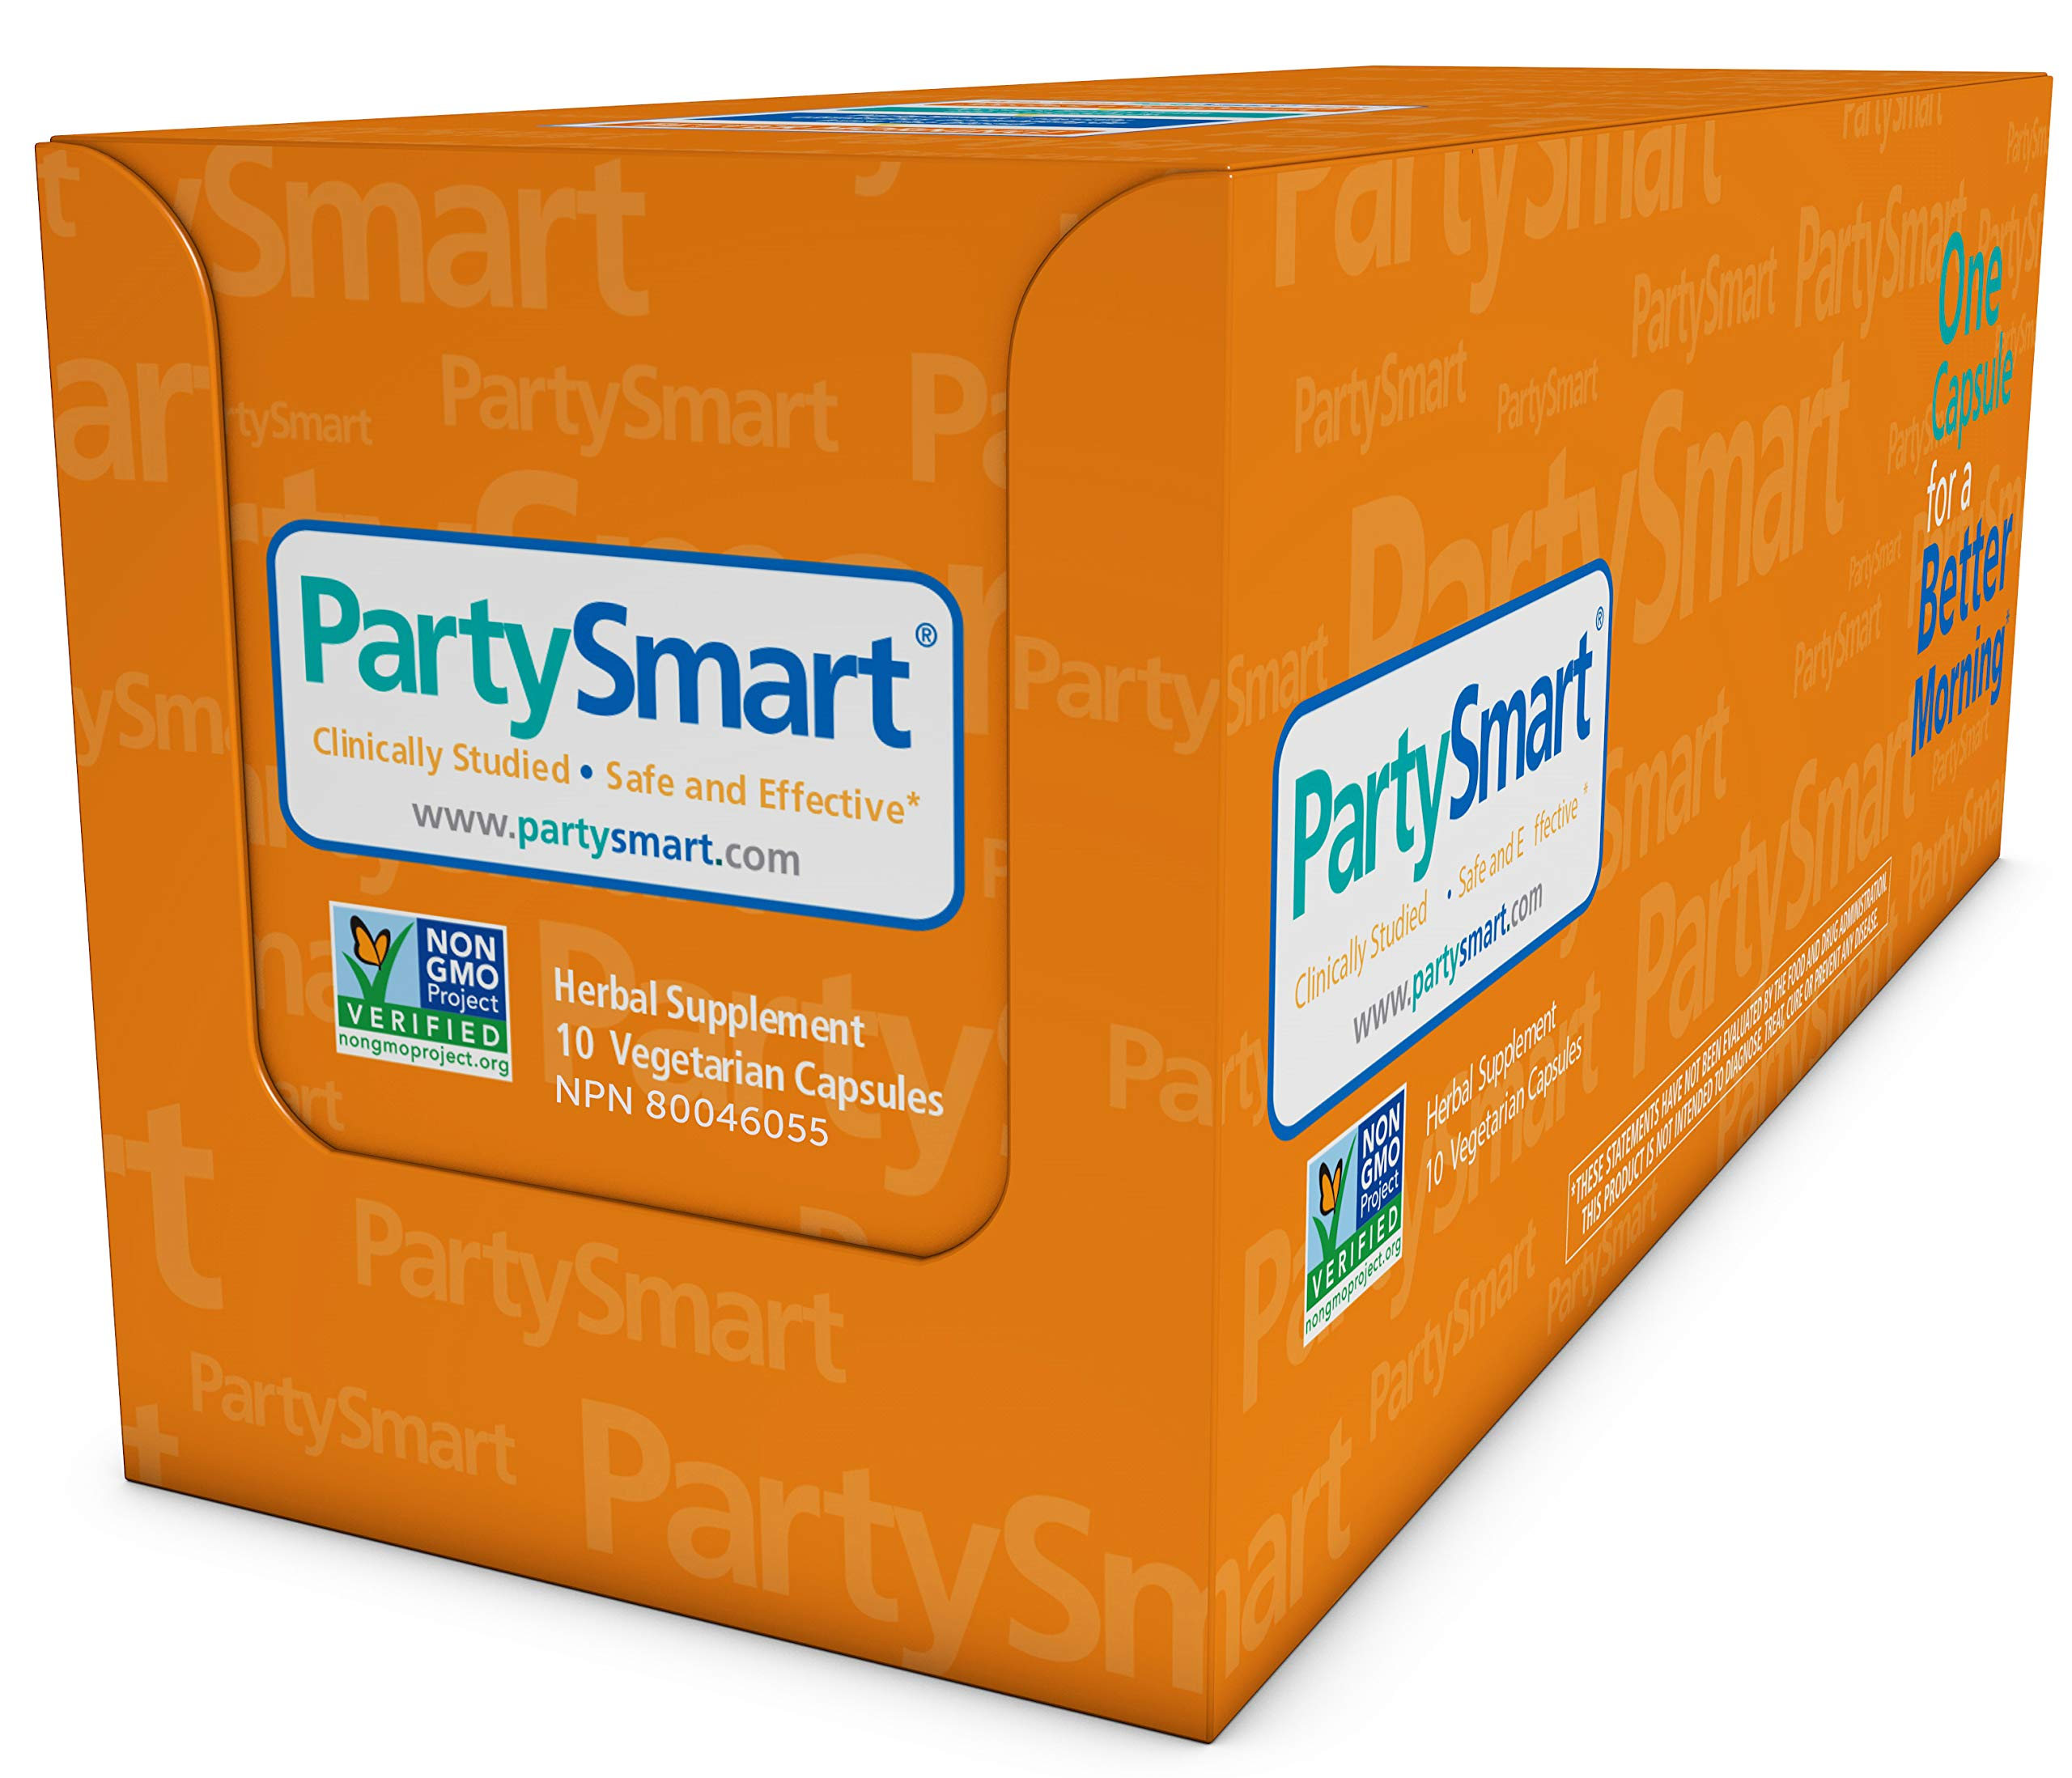 Himalaya PartySmart for Hangover Prevention, Alcohol Metabolism and a Better Morning After, 10 Capsules 250mg (1 Pack) by Himalaya Herbal Healthcare